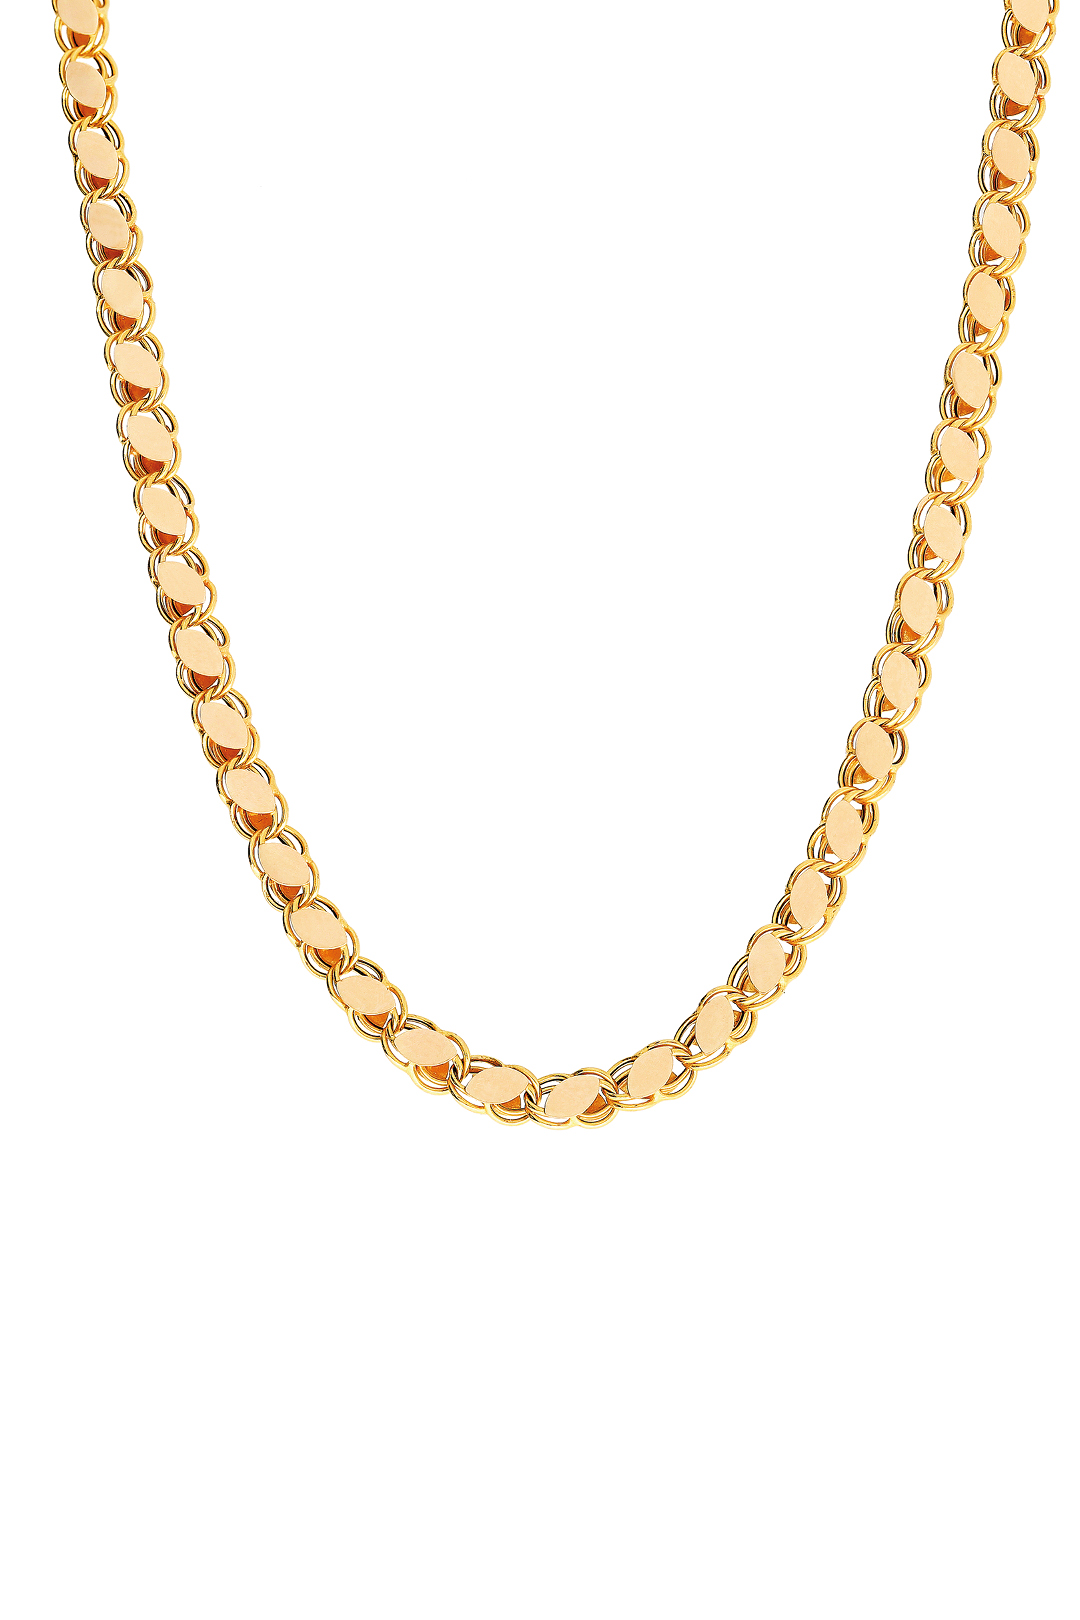 PLAIN FLAKE CHAIN NECKLACE